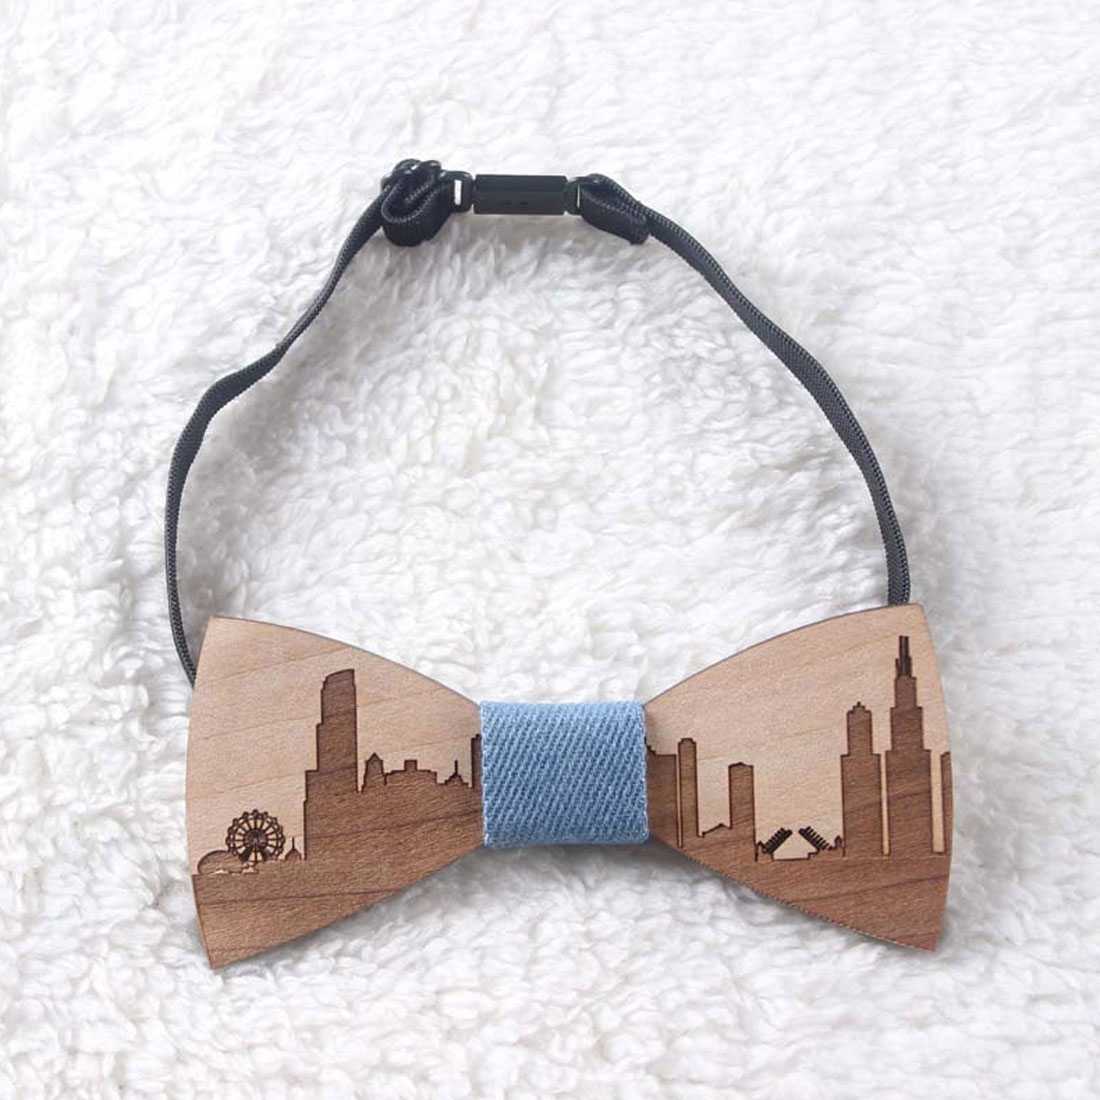 New Wedding Bow Tie Wooden Butterfly City Skyline For Men's Suit Shirt Necktie Jewerly Accessory